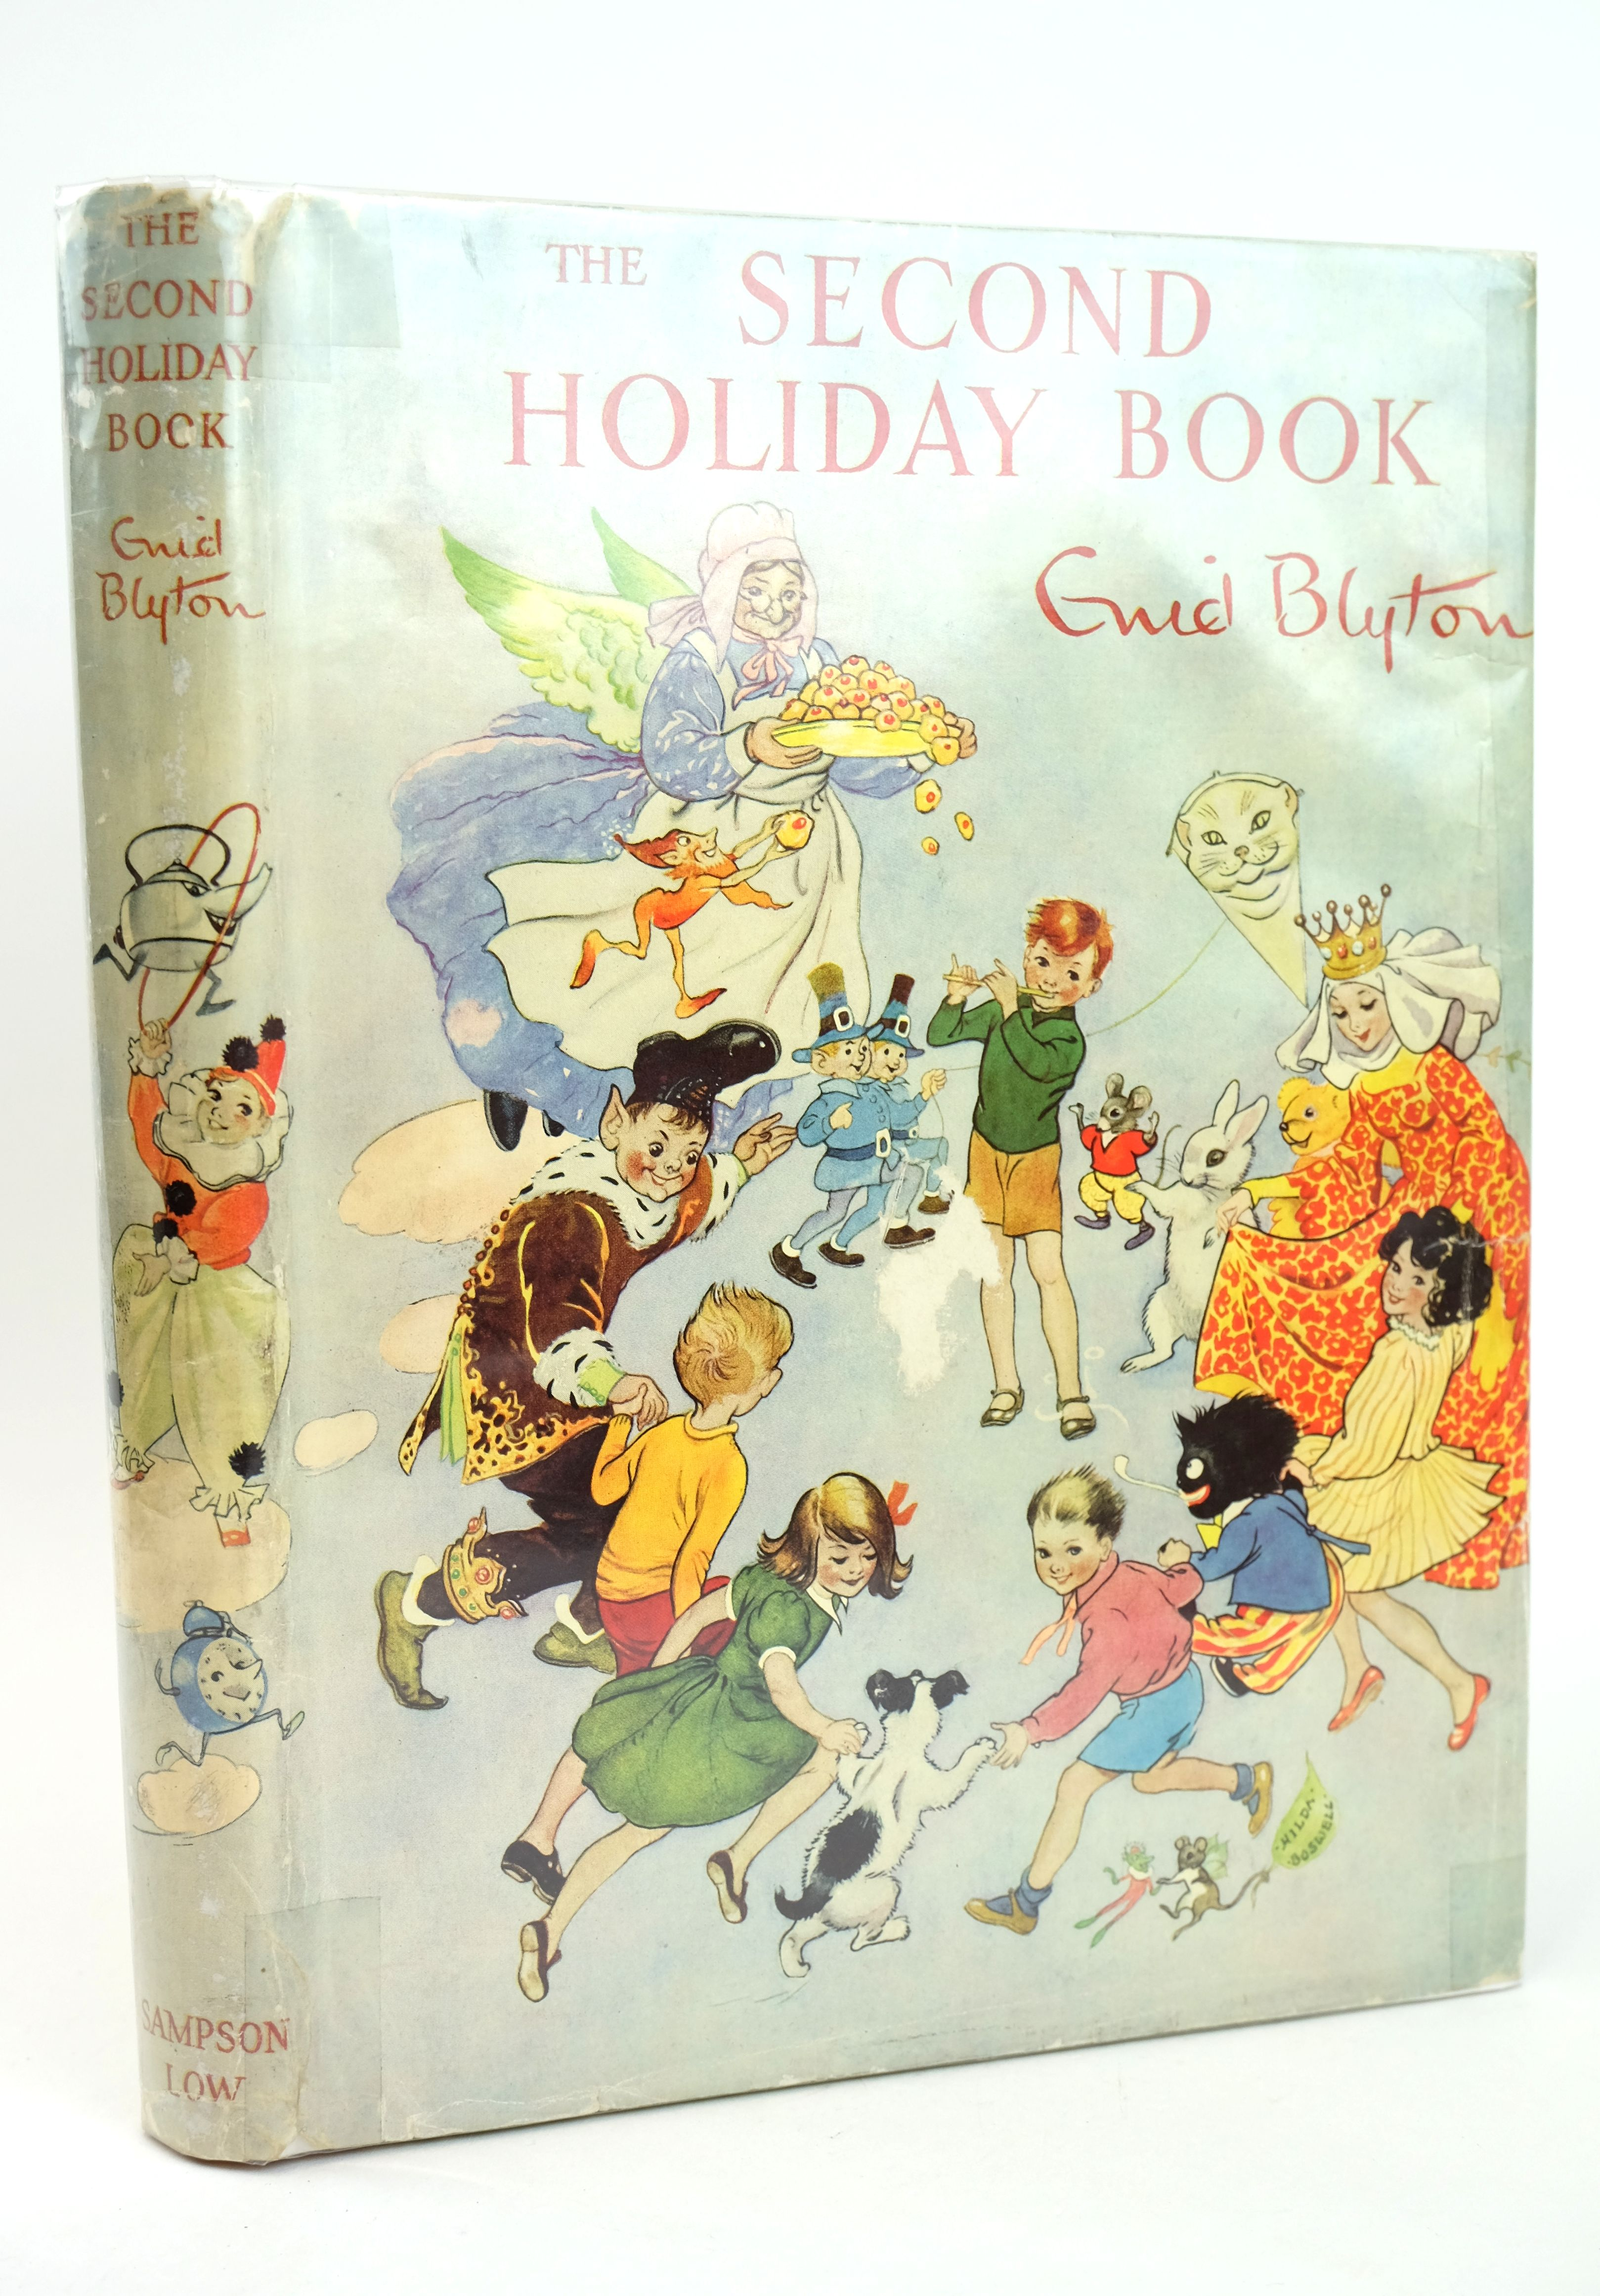 Cover of THE SECOND HOLIDAY BOOK by Enid Blyton